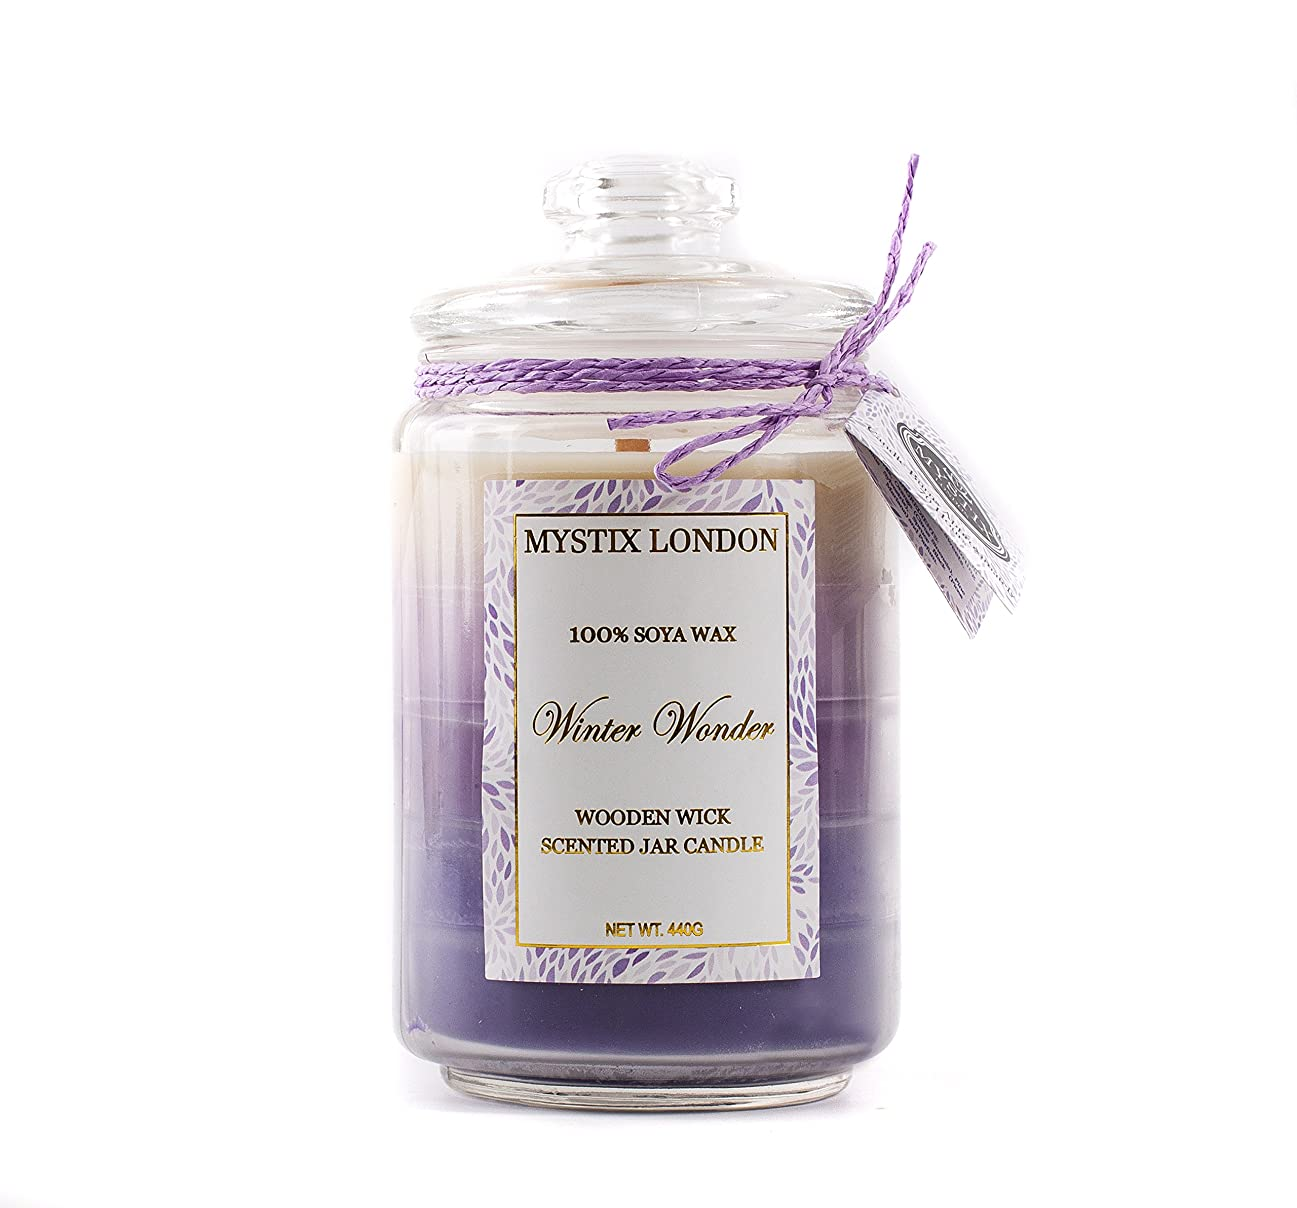 キロメートル誕生日明らかにMystix London | Winter Wonder Wooden Wick Scented Jar Candle 440g